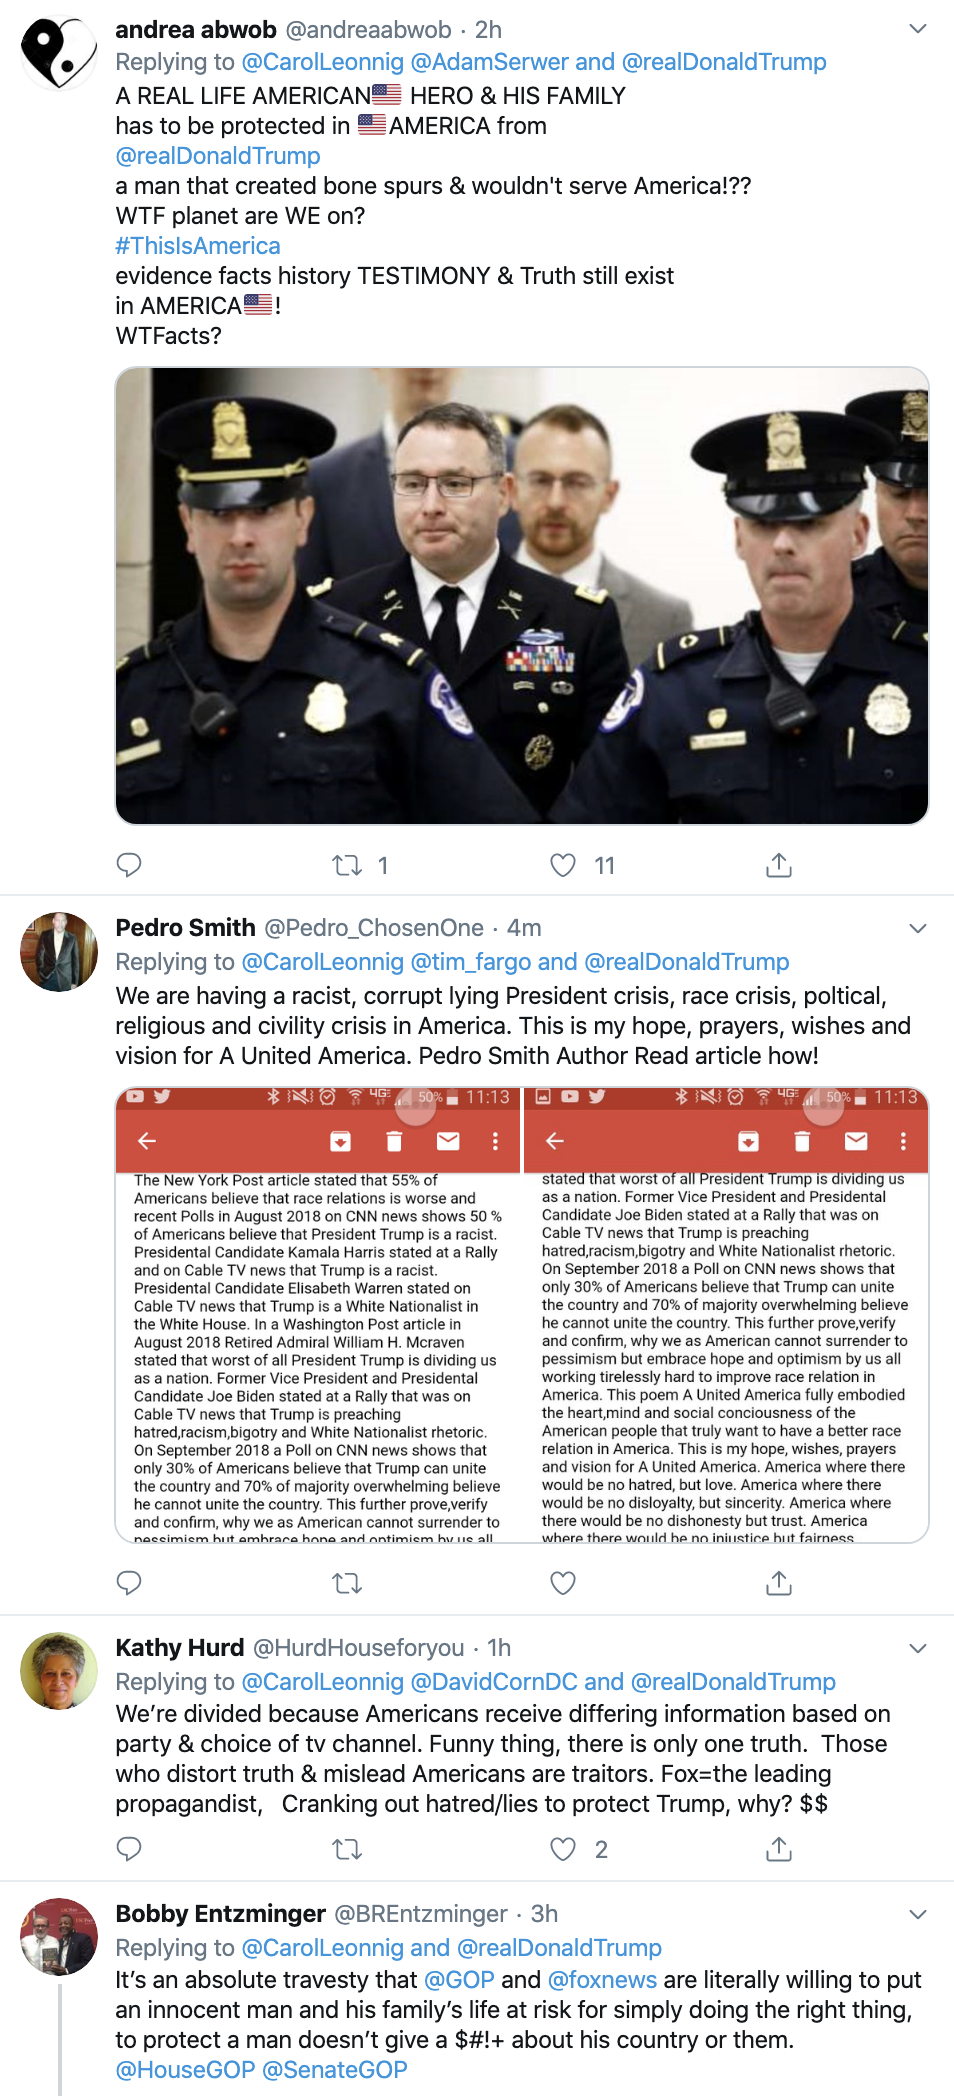 Screen-Shot-2019-11-19-at-11.28.20-AM U.S. Army Makes Vindman/Imminent Threat Announcement Corruption Crime Impeachment Top Stories Violence